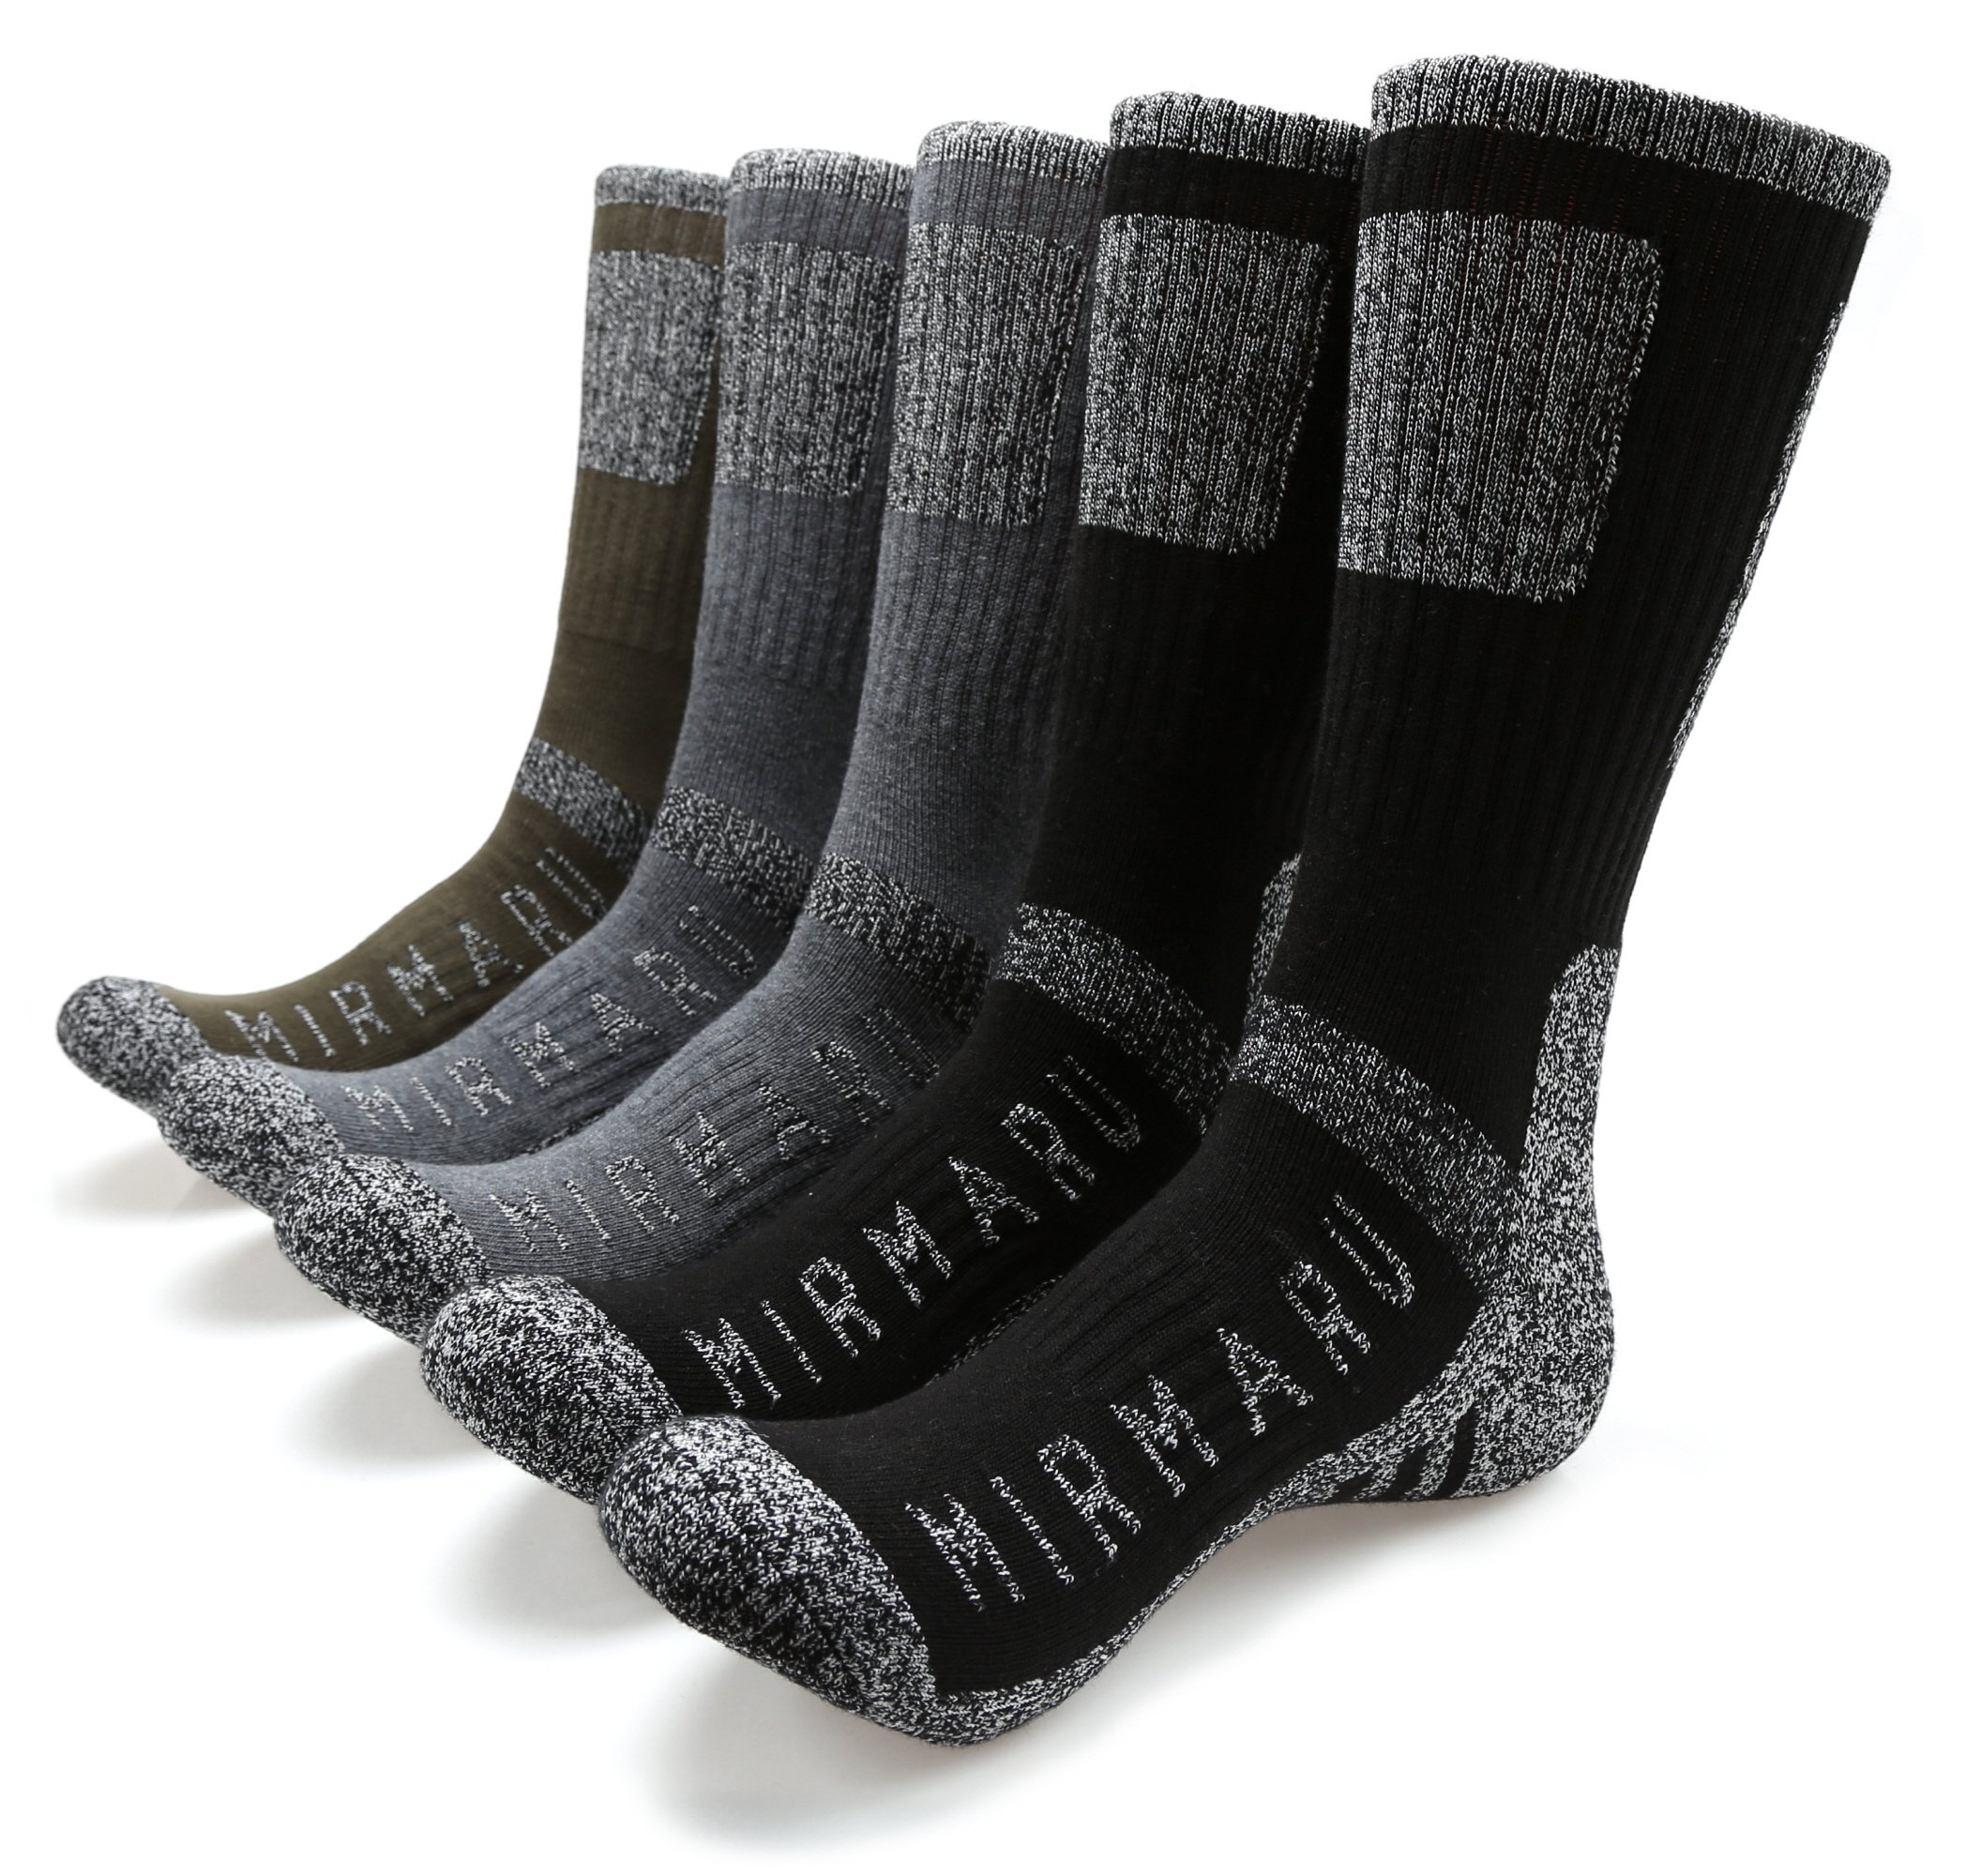 95eb9d7b0 MIRMARU Men's 5 Pairs Multi Performance Outdoor Sports Hiking Trekking Crew  Socks product image